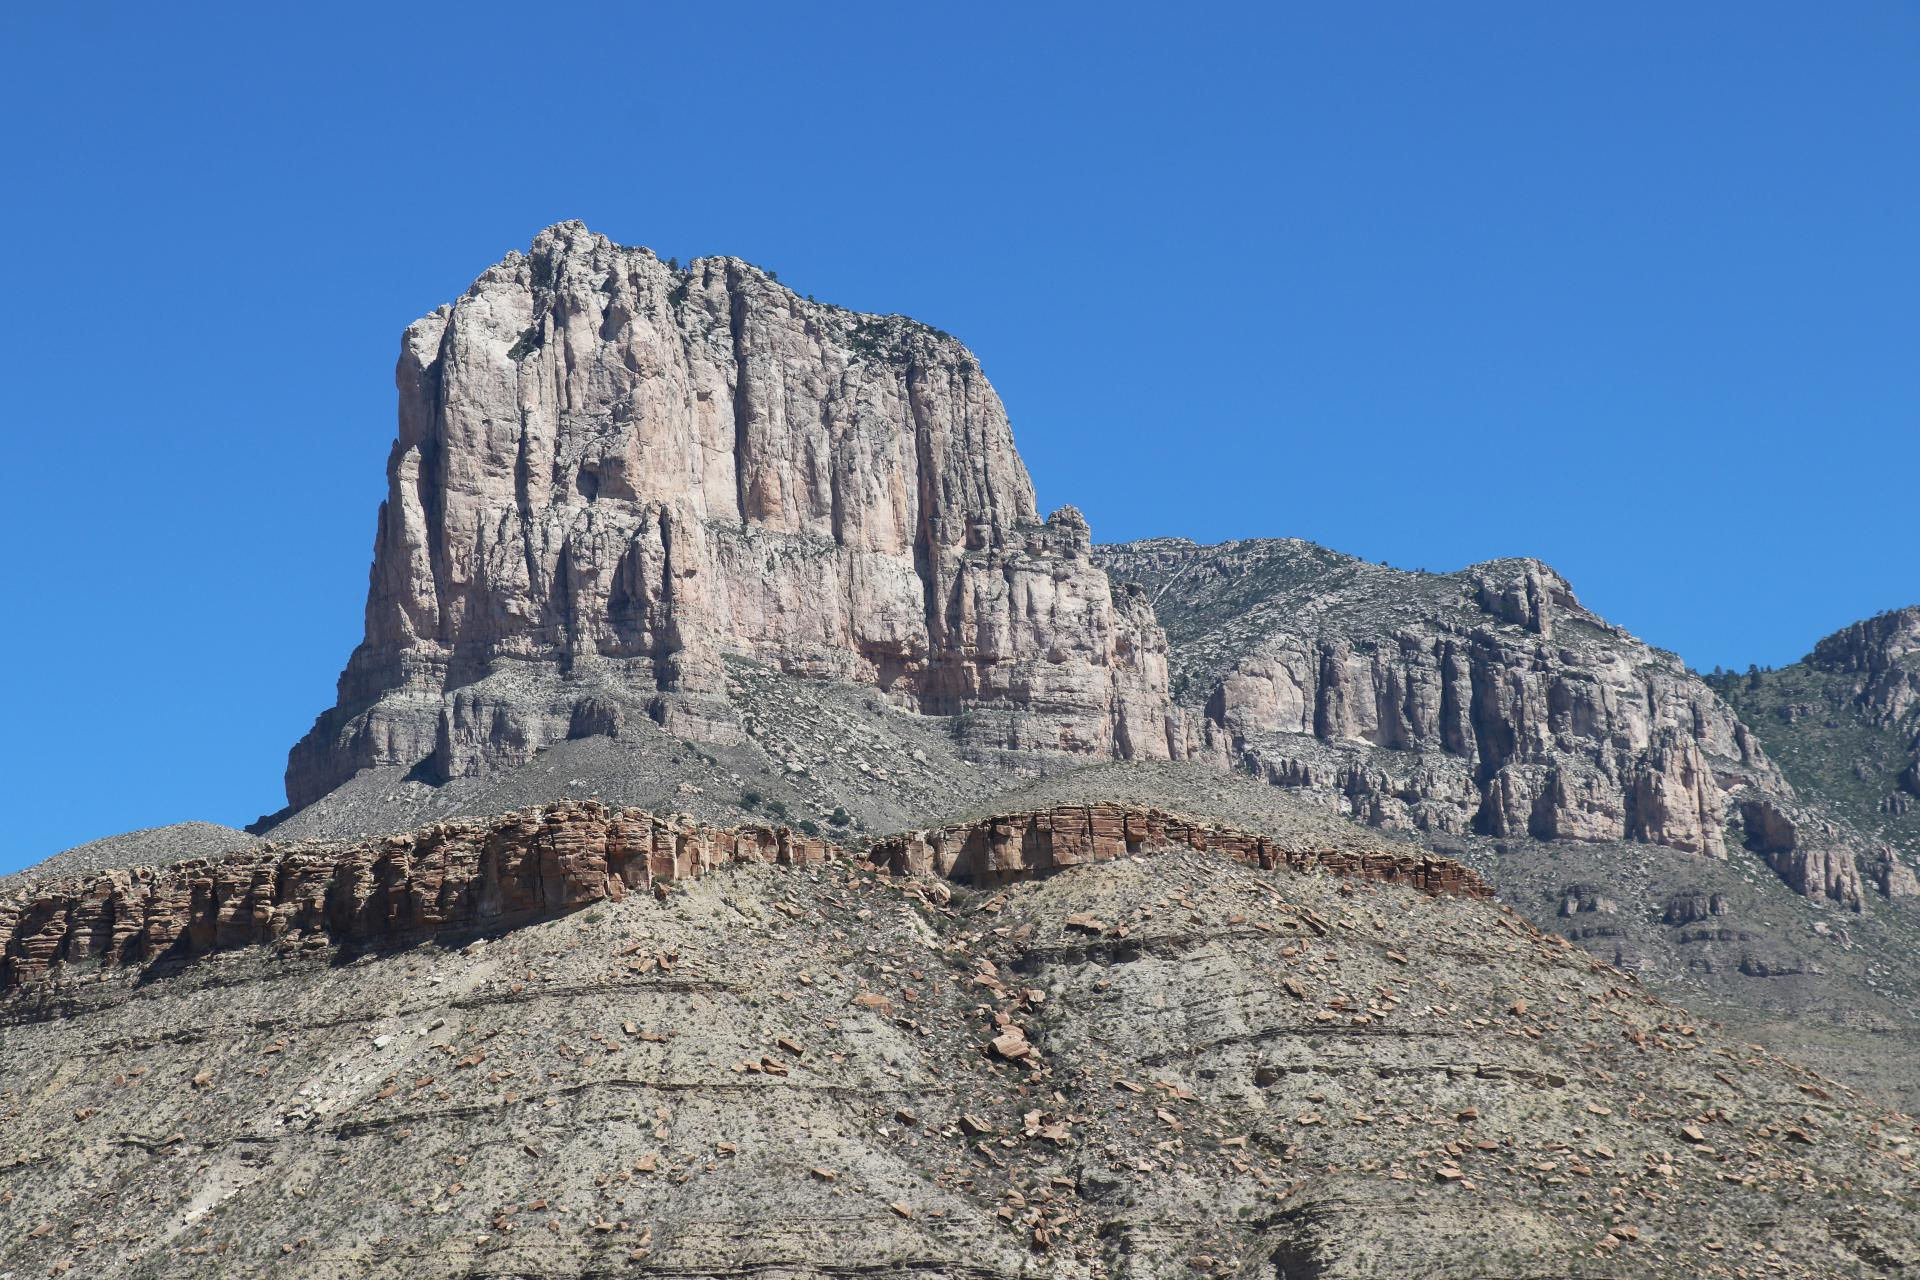 El Capitan Photographed By Sara Turbyfill At Guadalupe Mountains National Park In Texas.